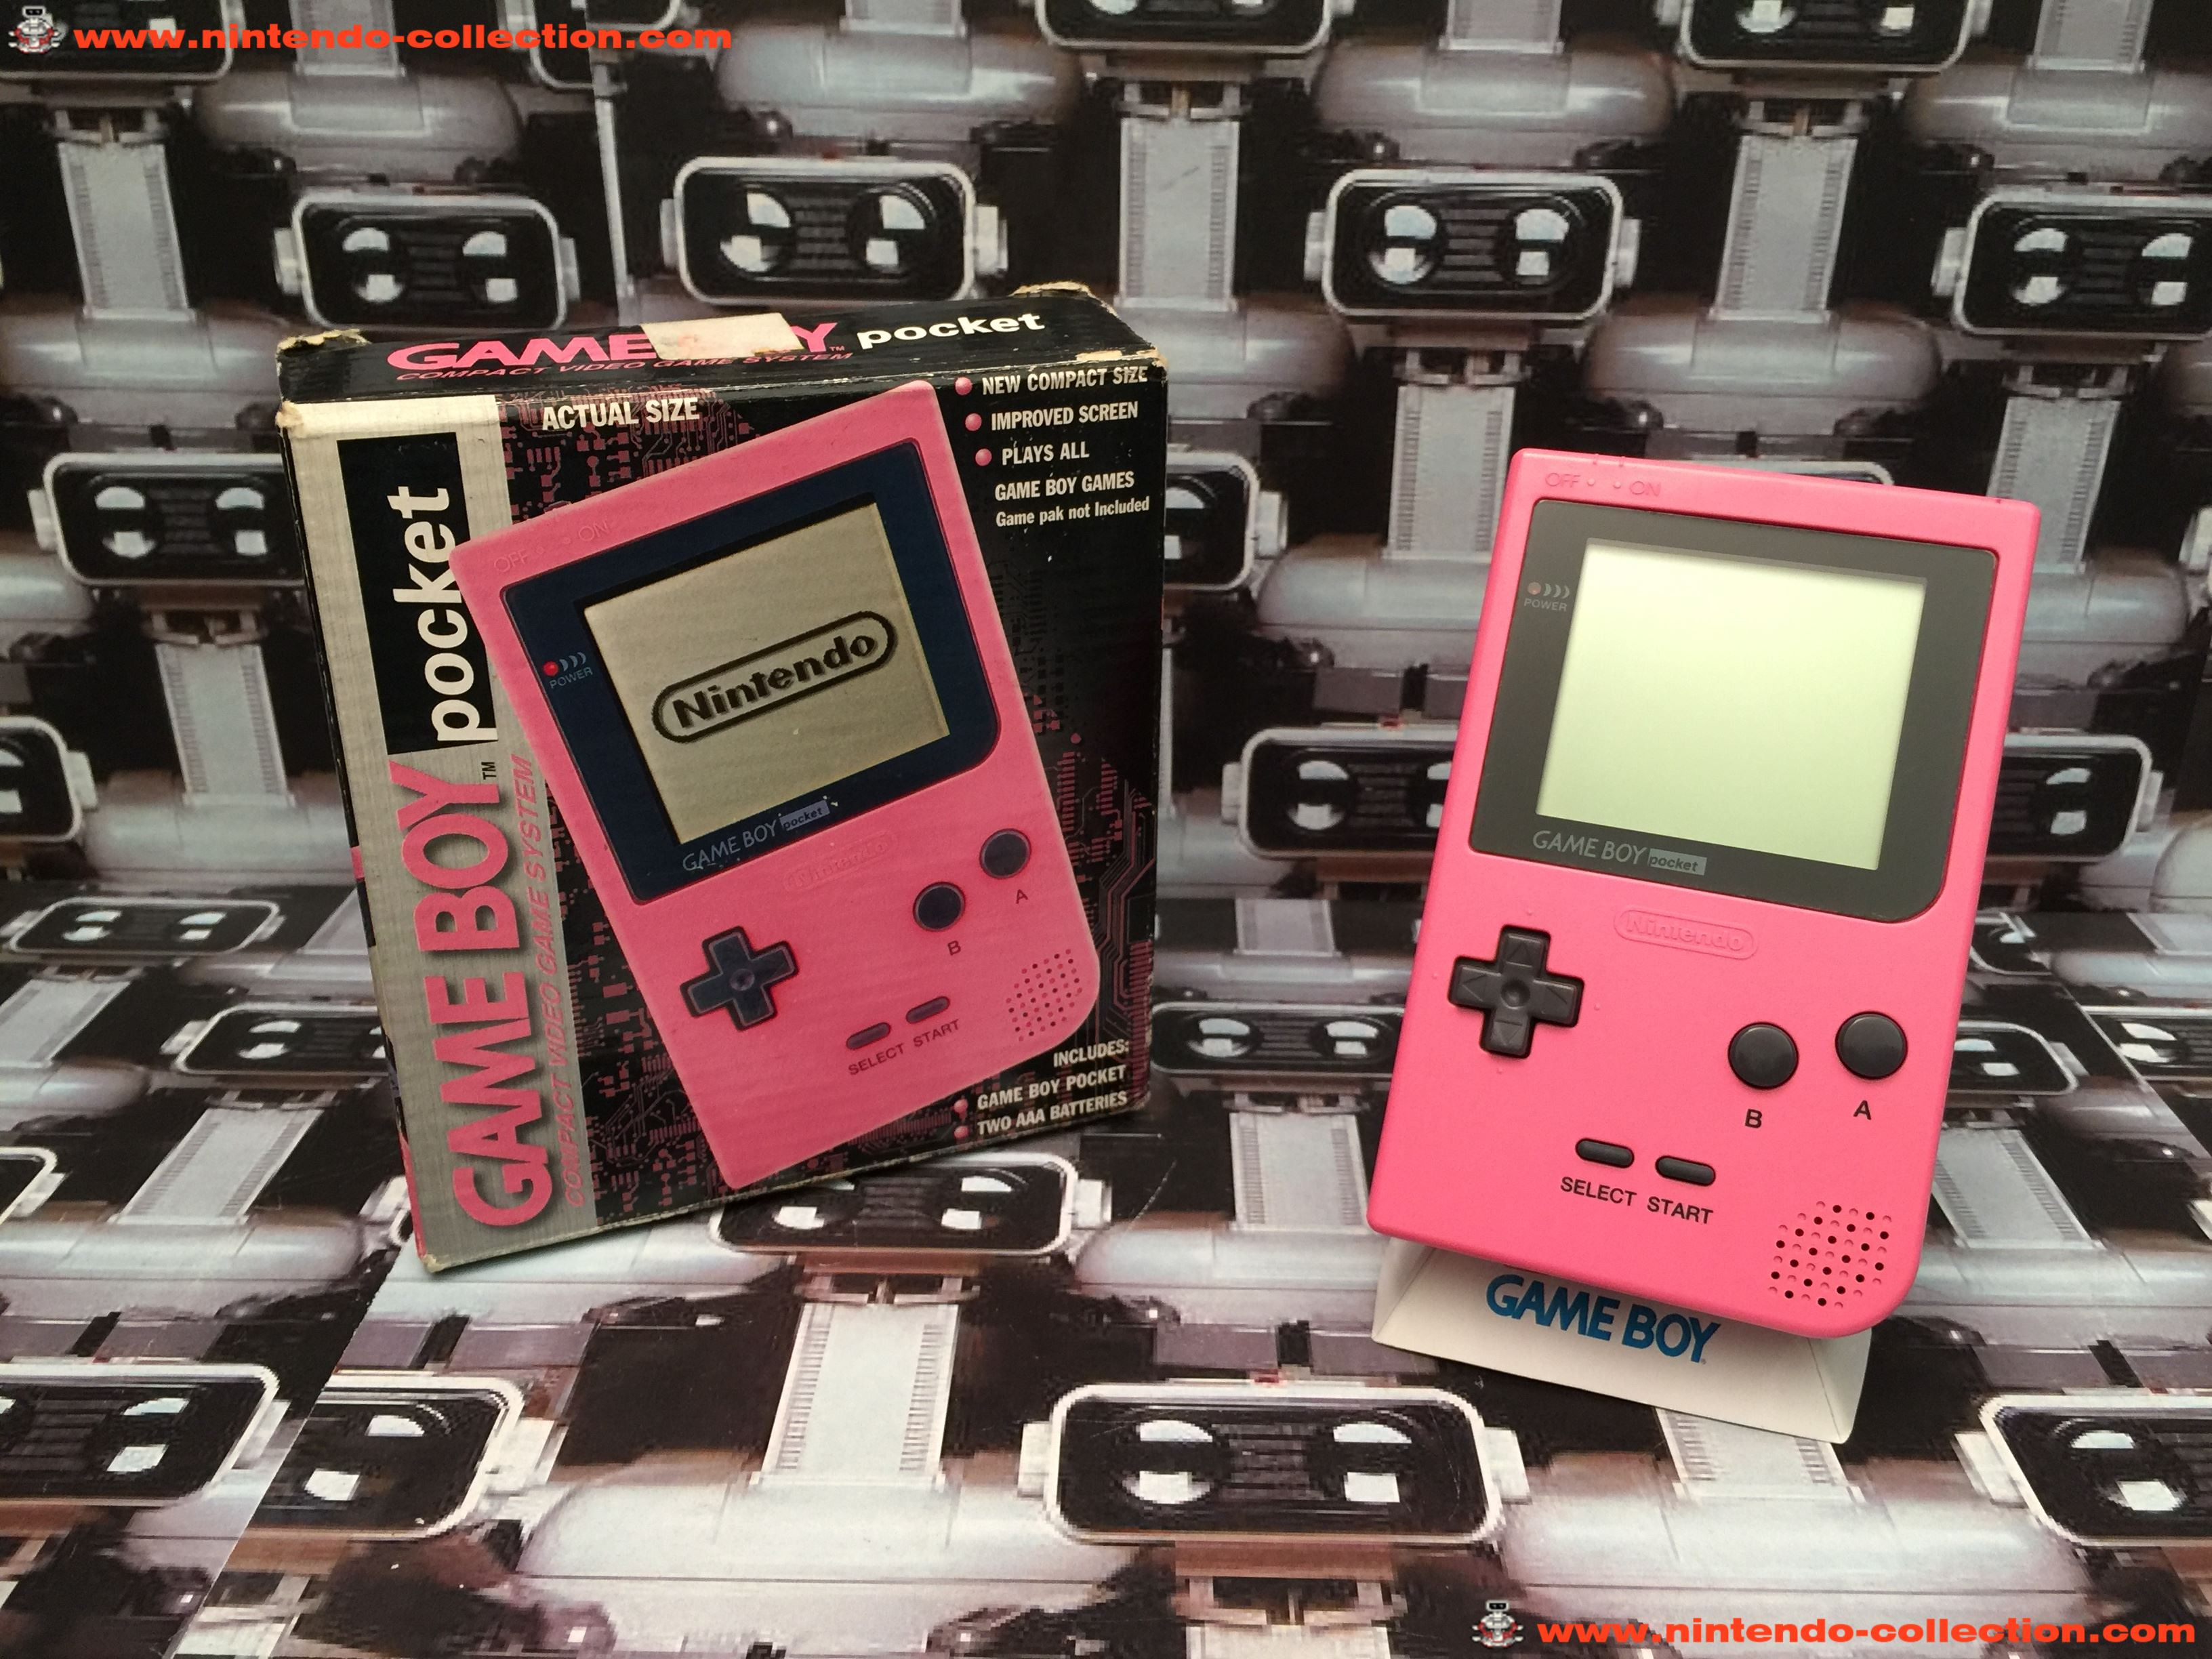 www.nintendo-collection.com - Gameboy GB Pocket Pink Rose en boite in box European Europe